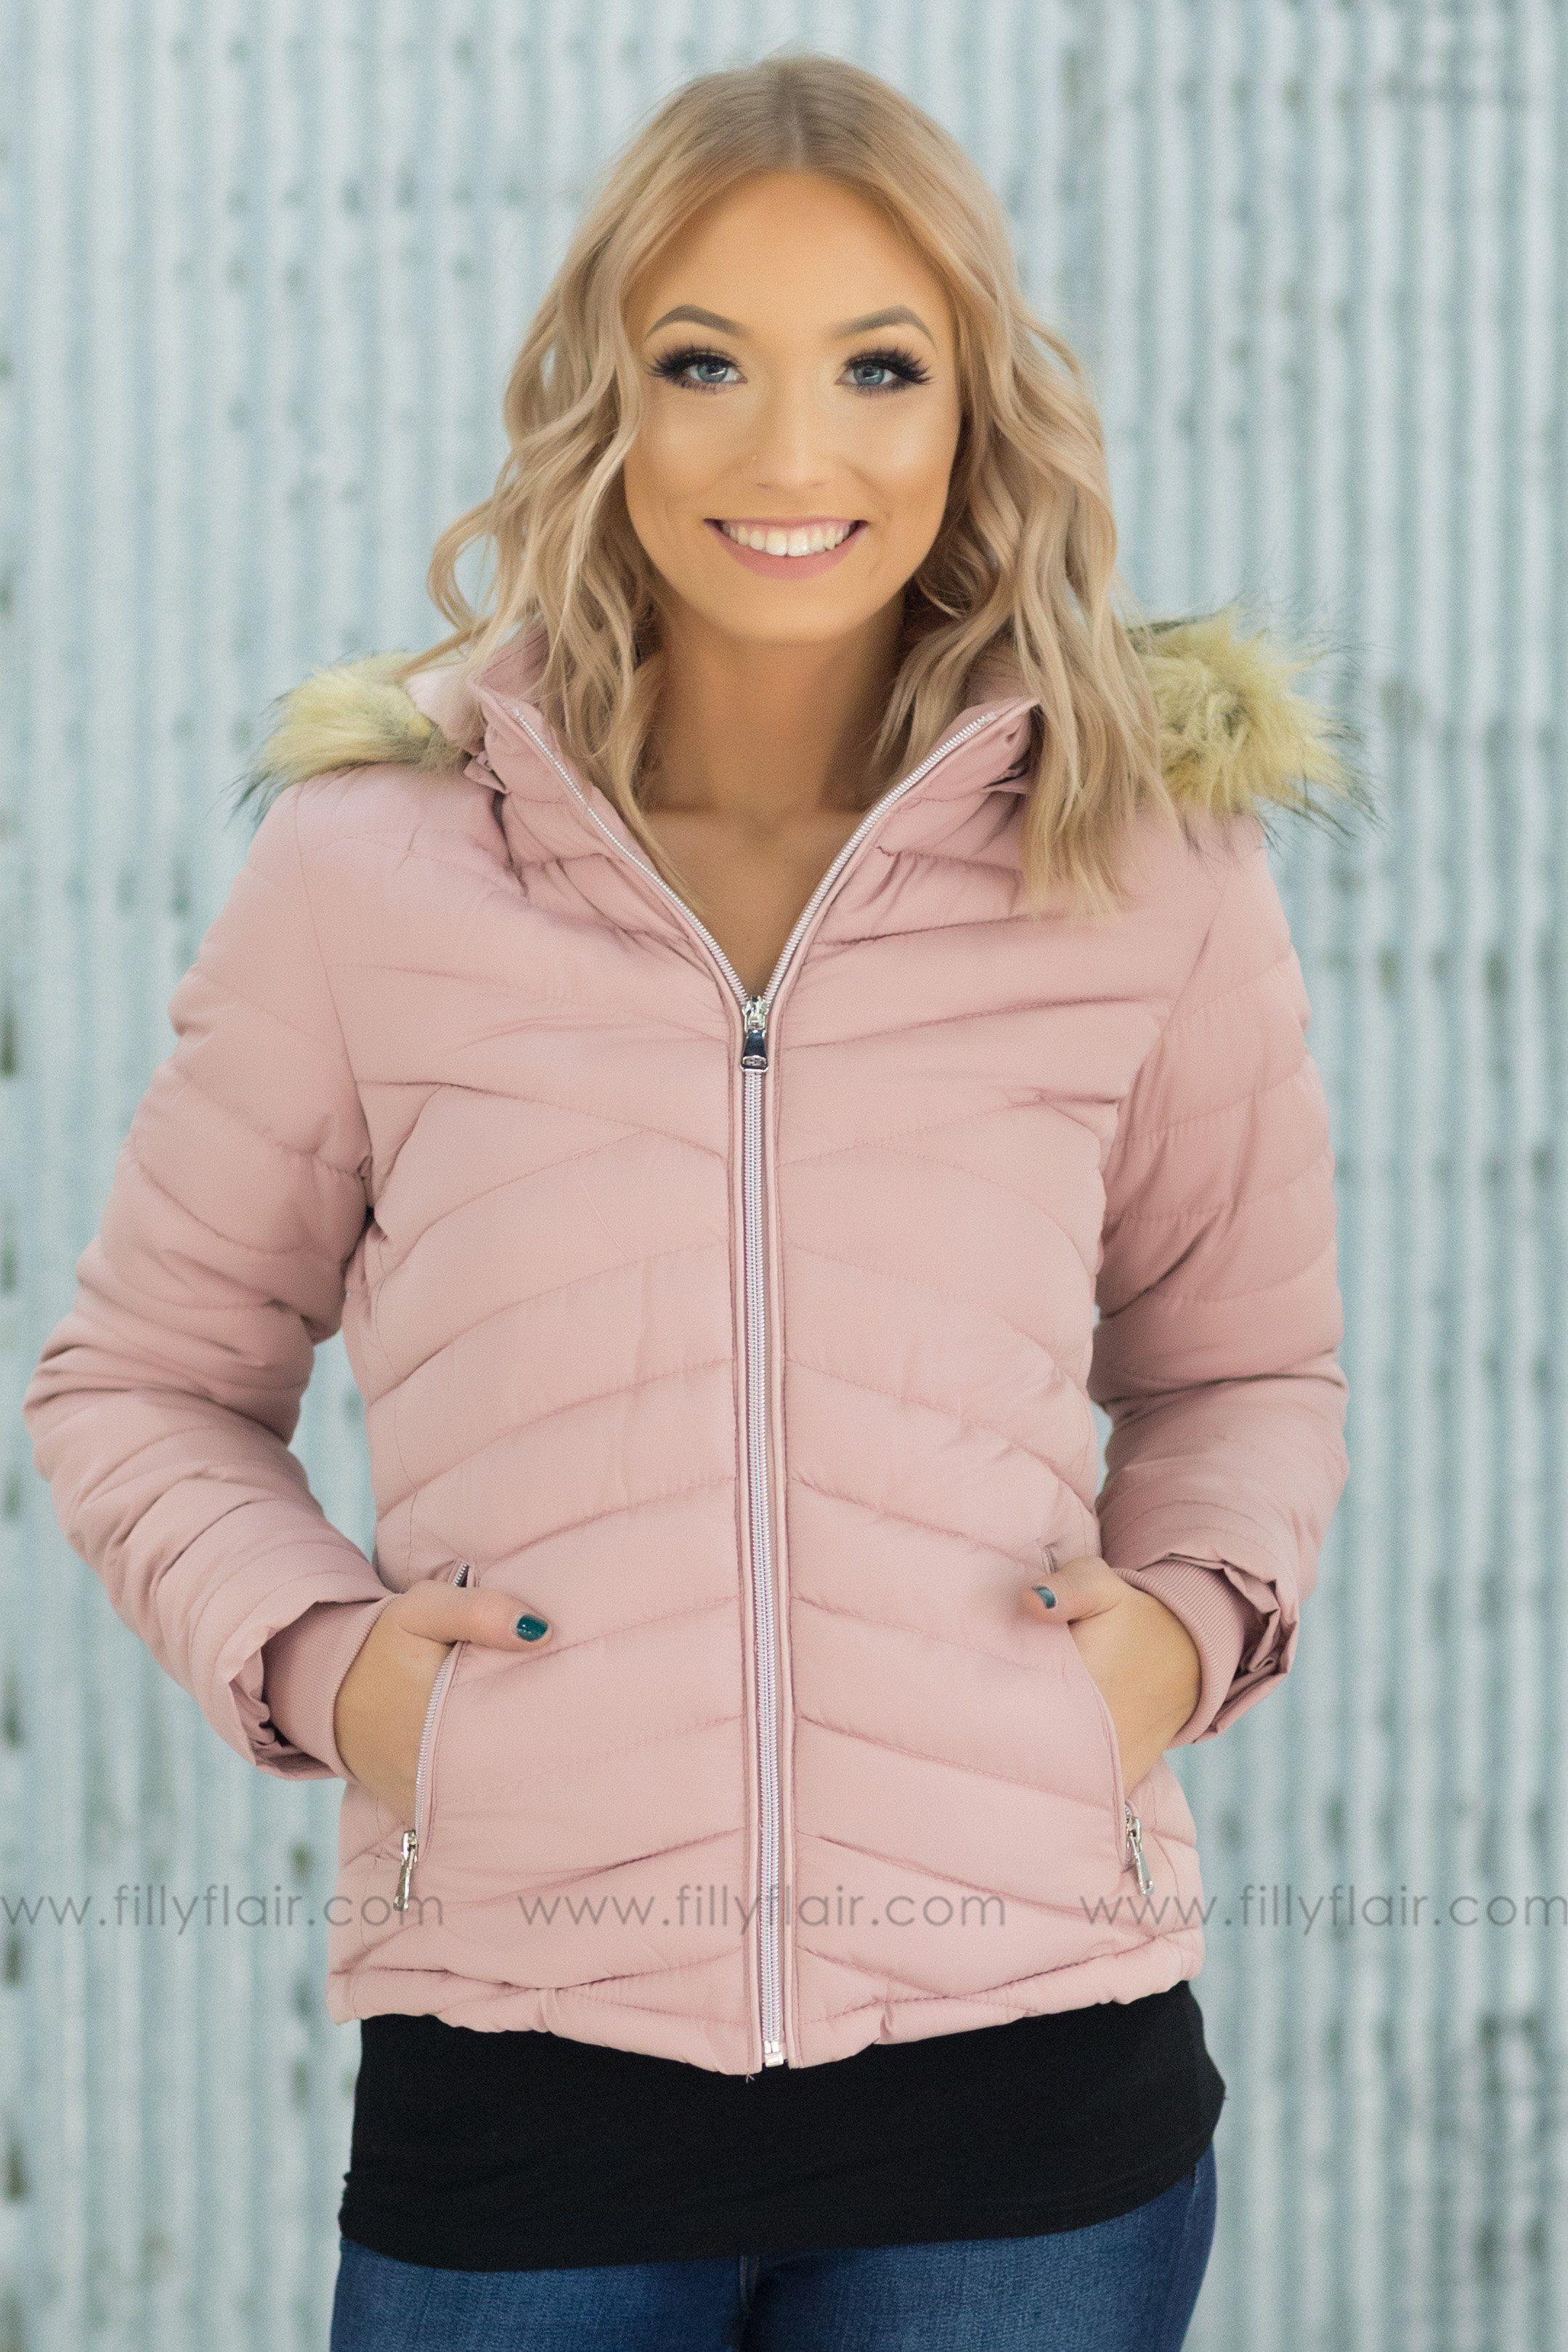 Warm Feelings Puffy Coat in Dusty Pink - Filly Flair